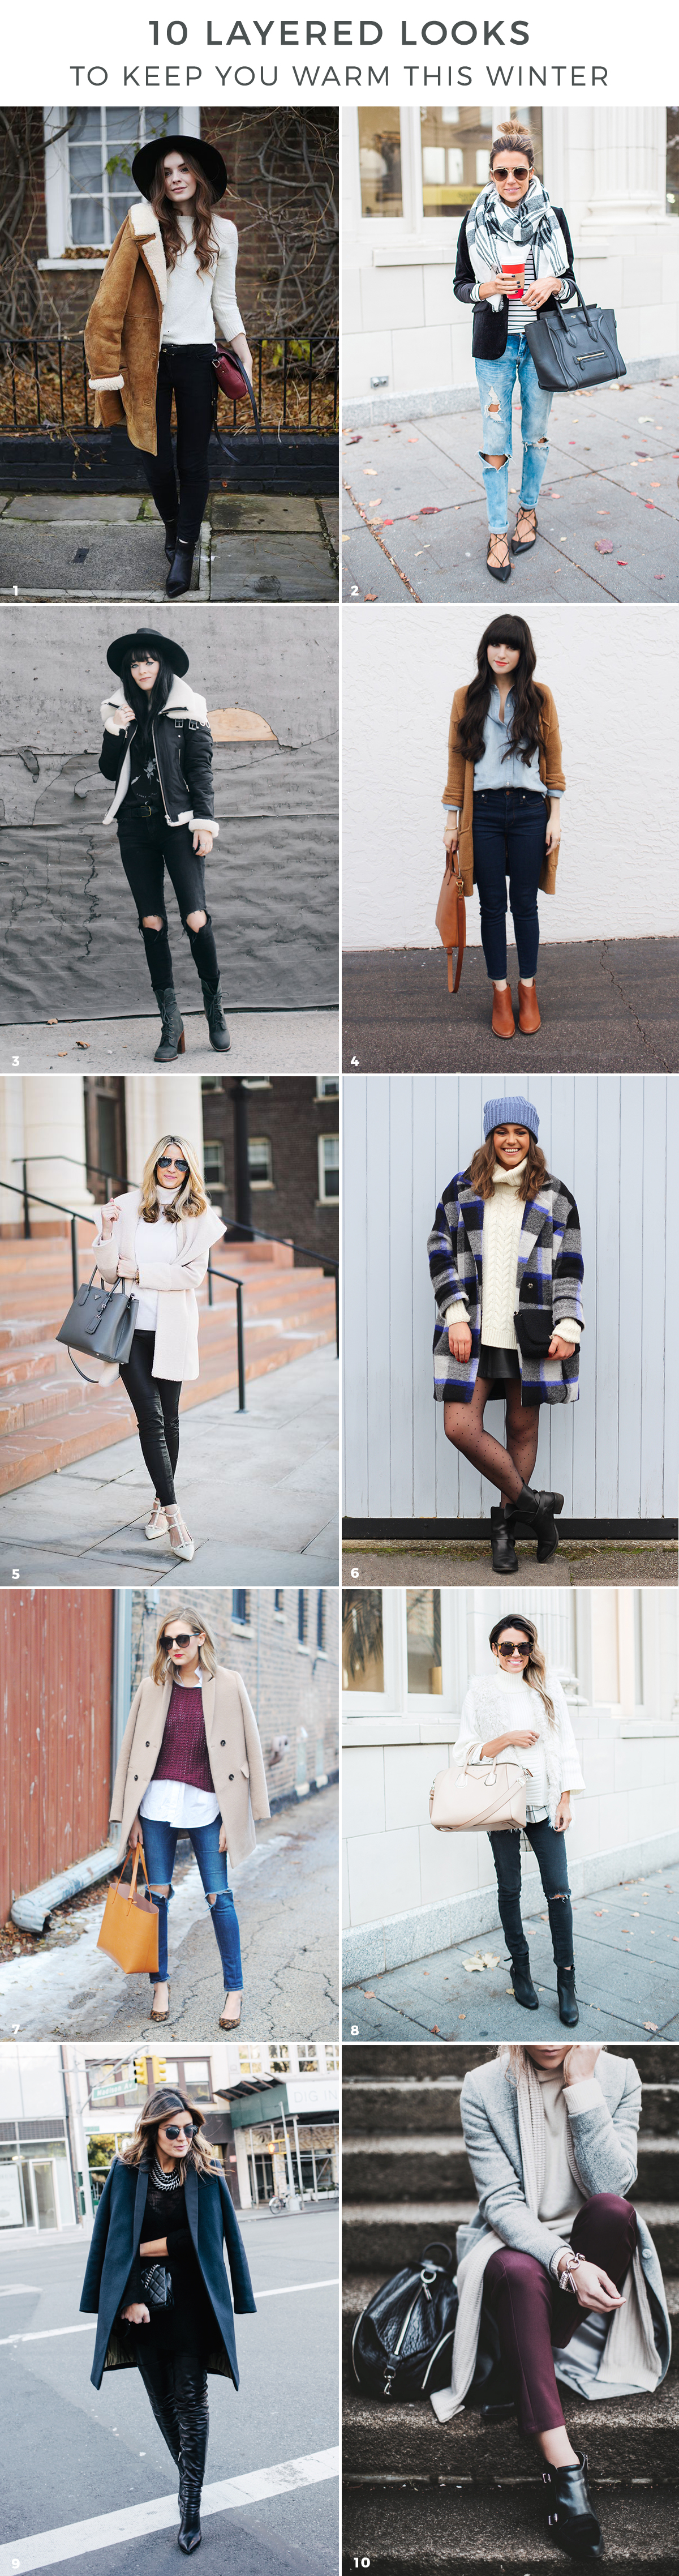 winter outfits, winter outfit ideas, layered looks, coats and jackets, roundup via Advicefroma20Something.com